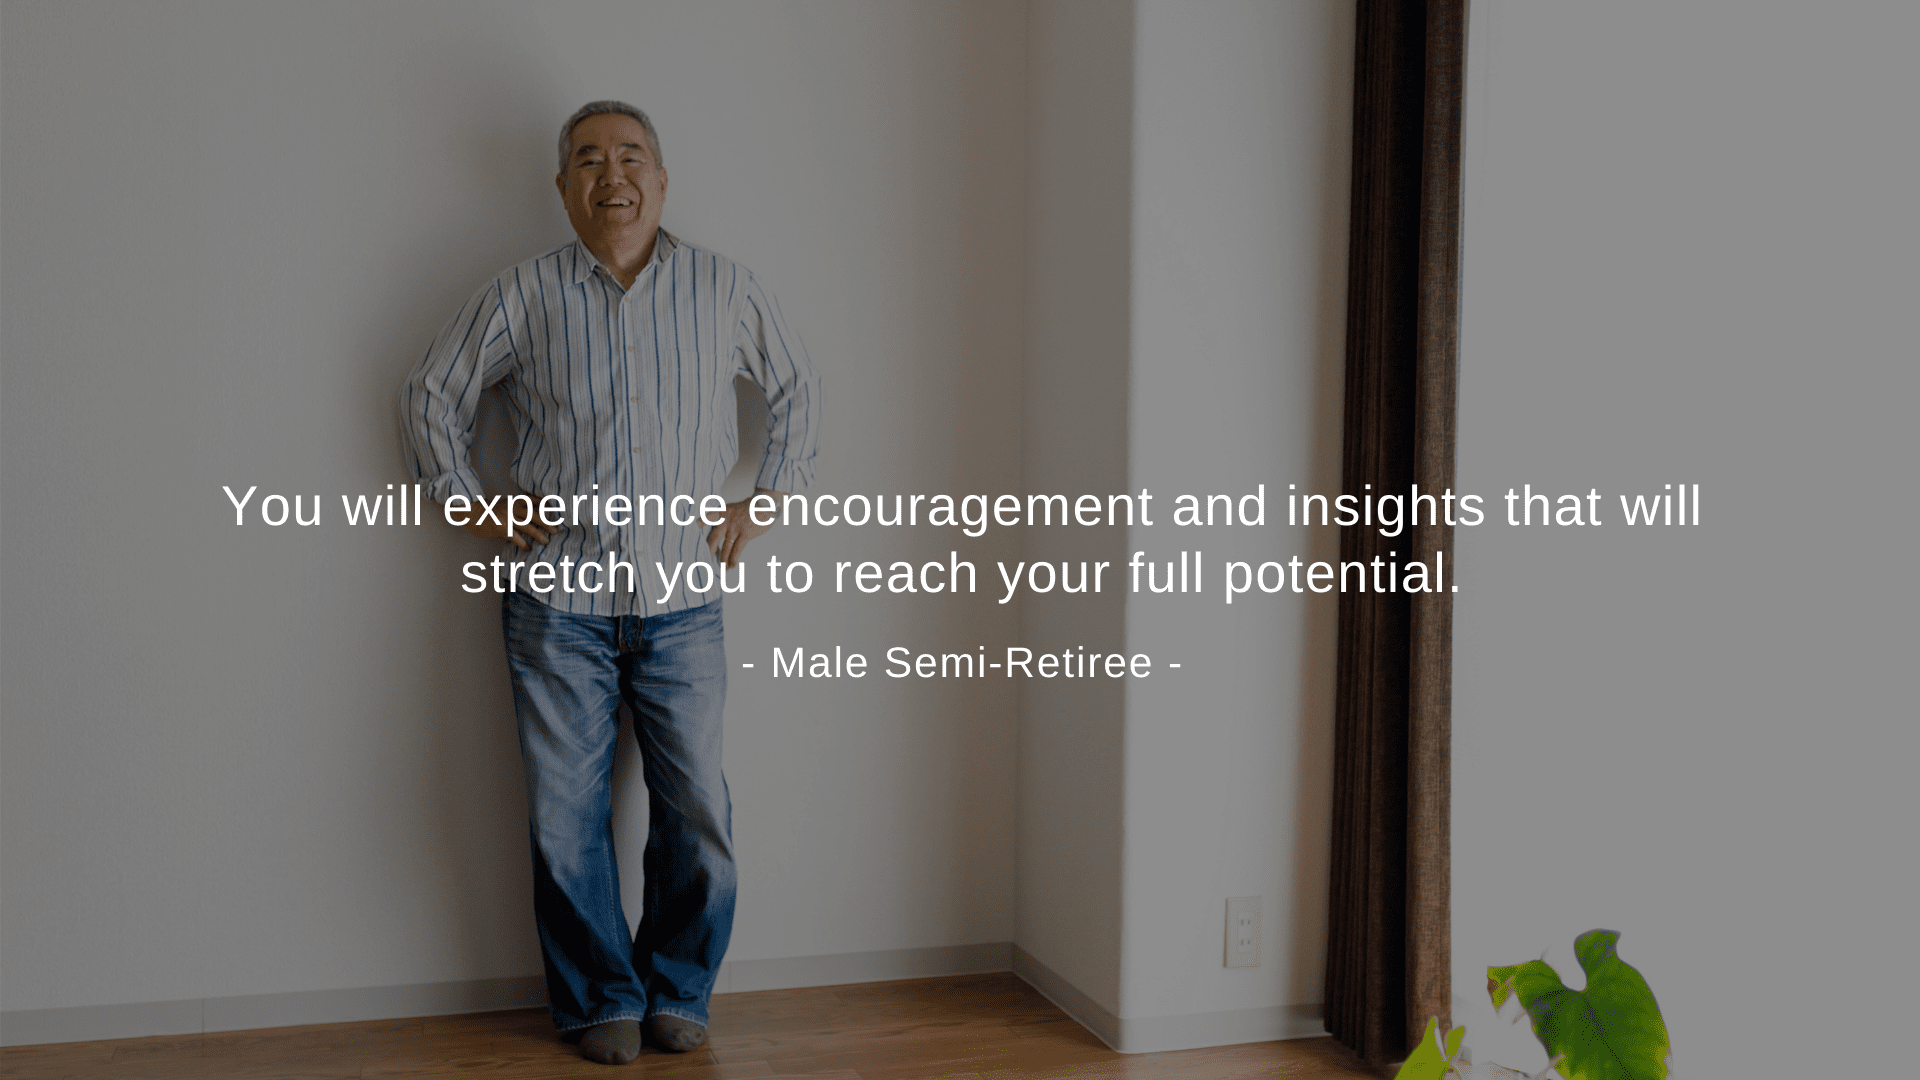 """You will experience encouragement and insights that will stretch you to reach your full potential."" Male Semi-Retiree"